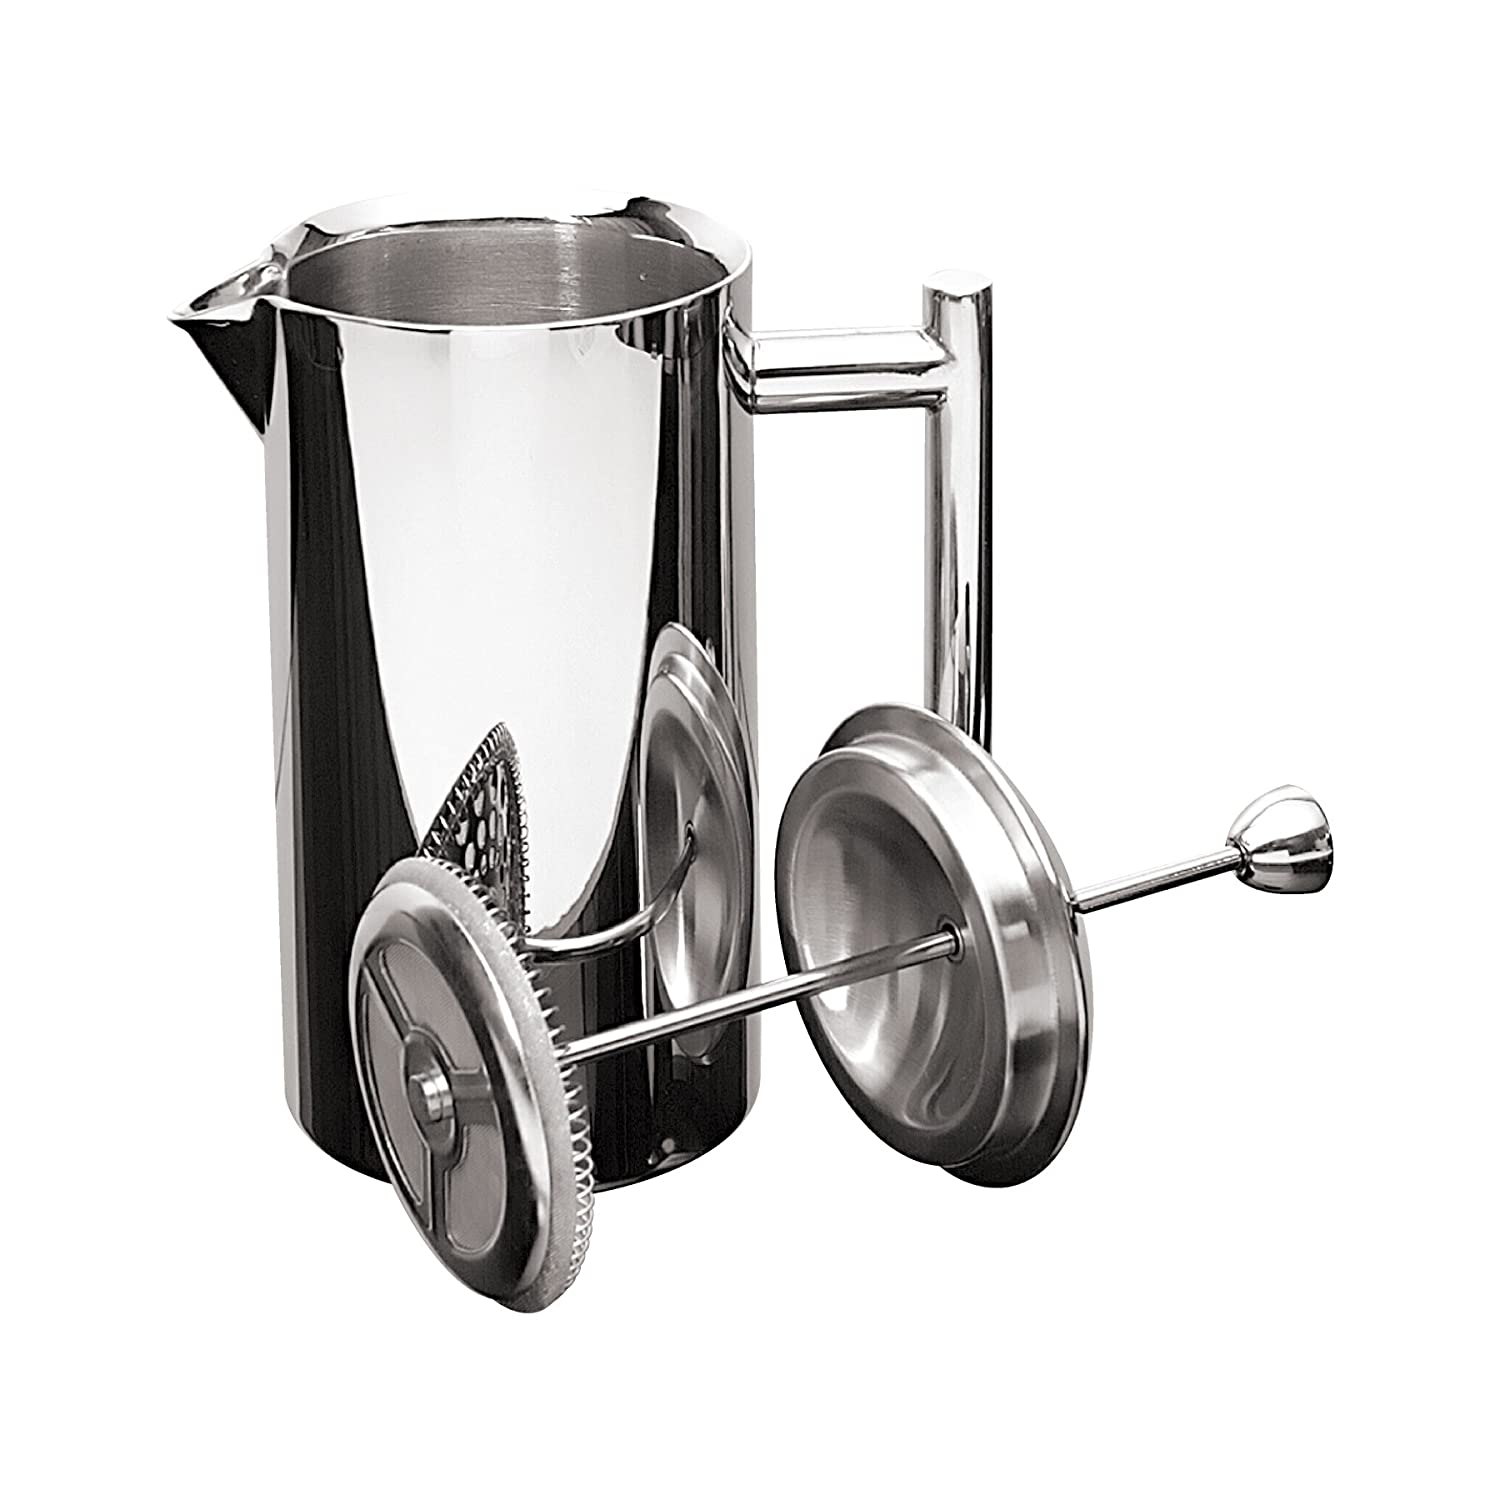 Frieling USA Double Wall Stainless Steel French Press Coffee Maker with Patented Dual Screen, 36-oz